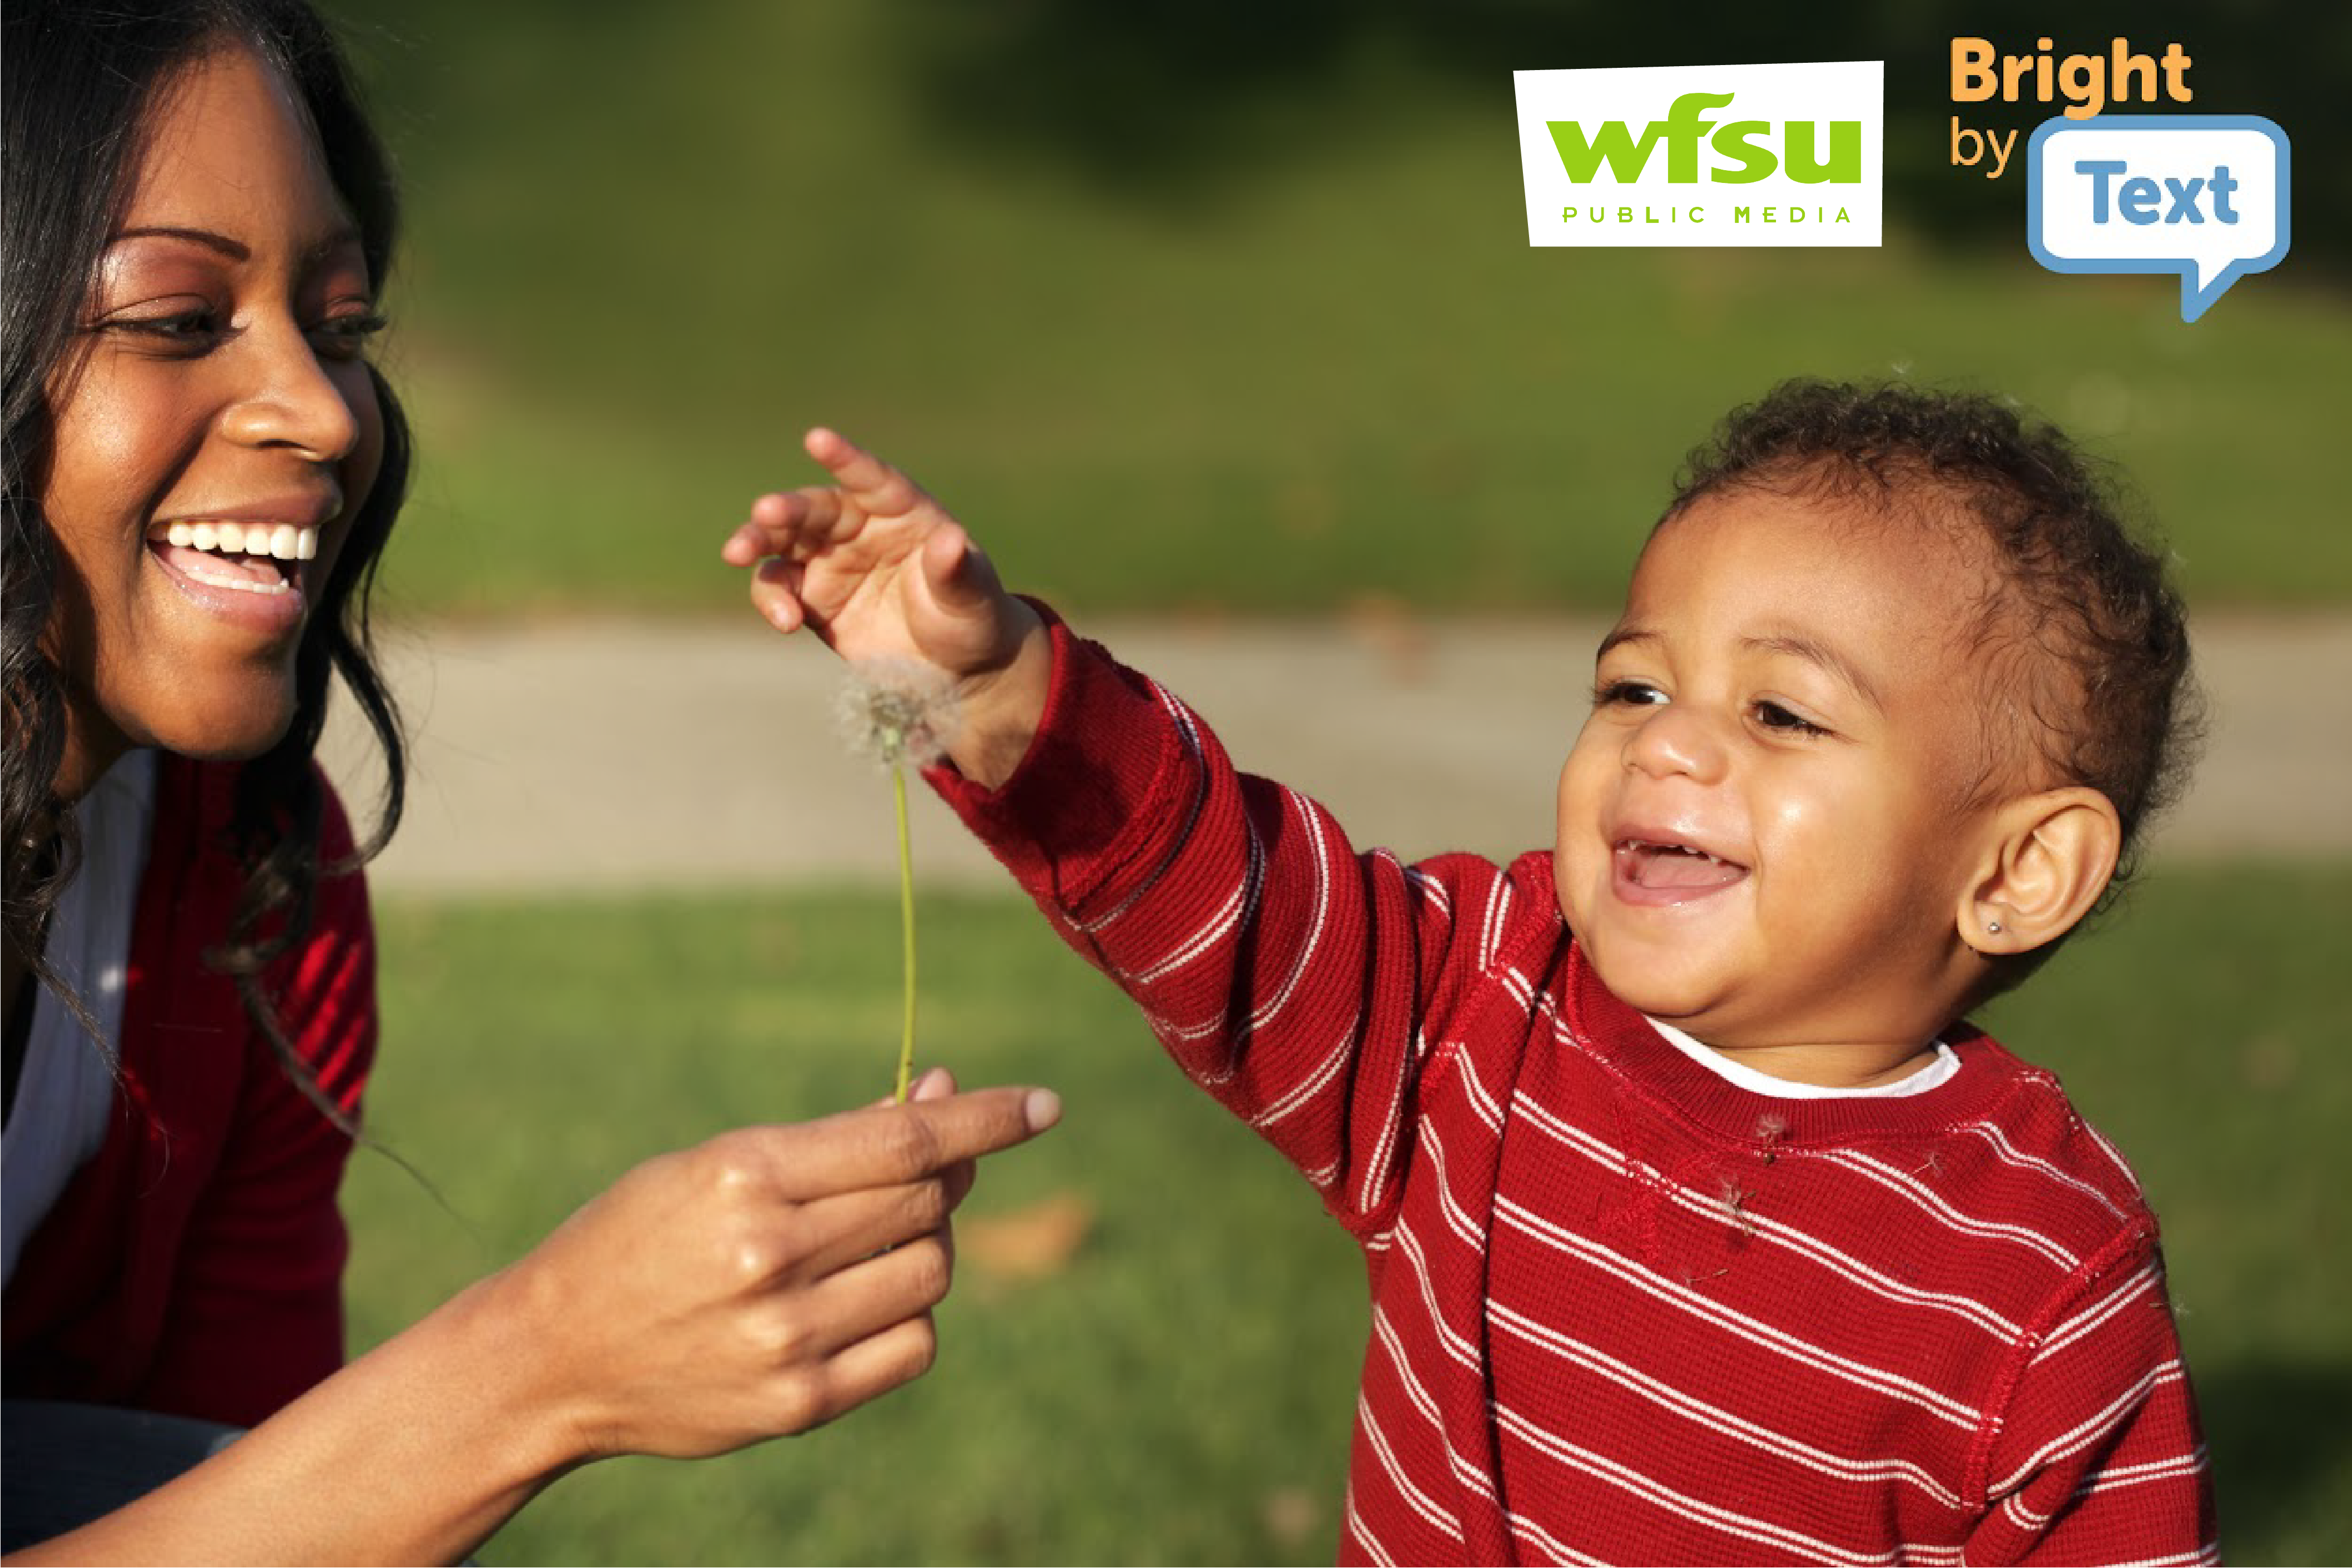 WFSU Bright by Text Delivers Developmental Games And Tips To Parents' Cell Phones